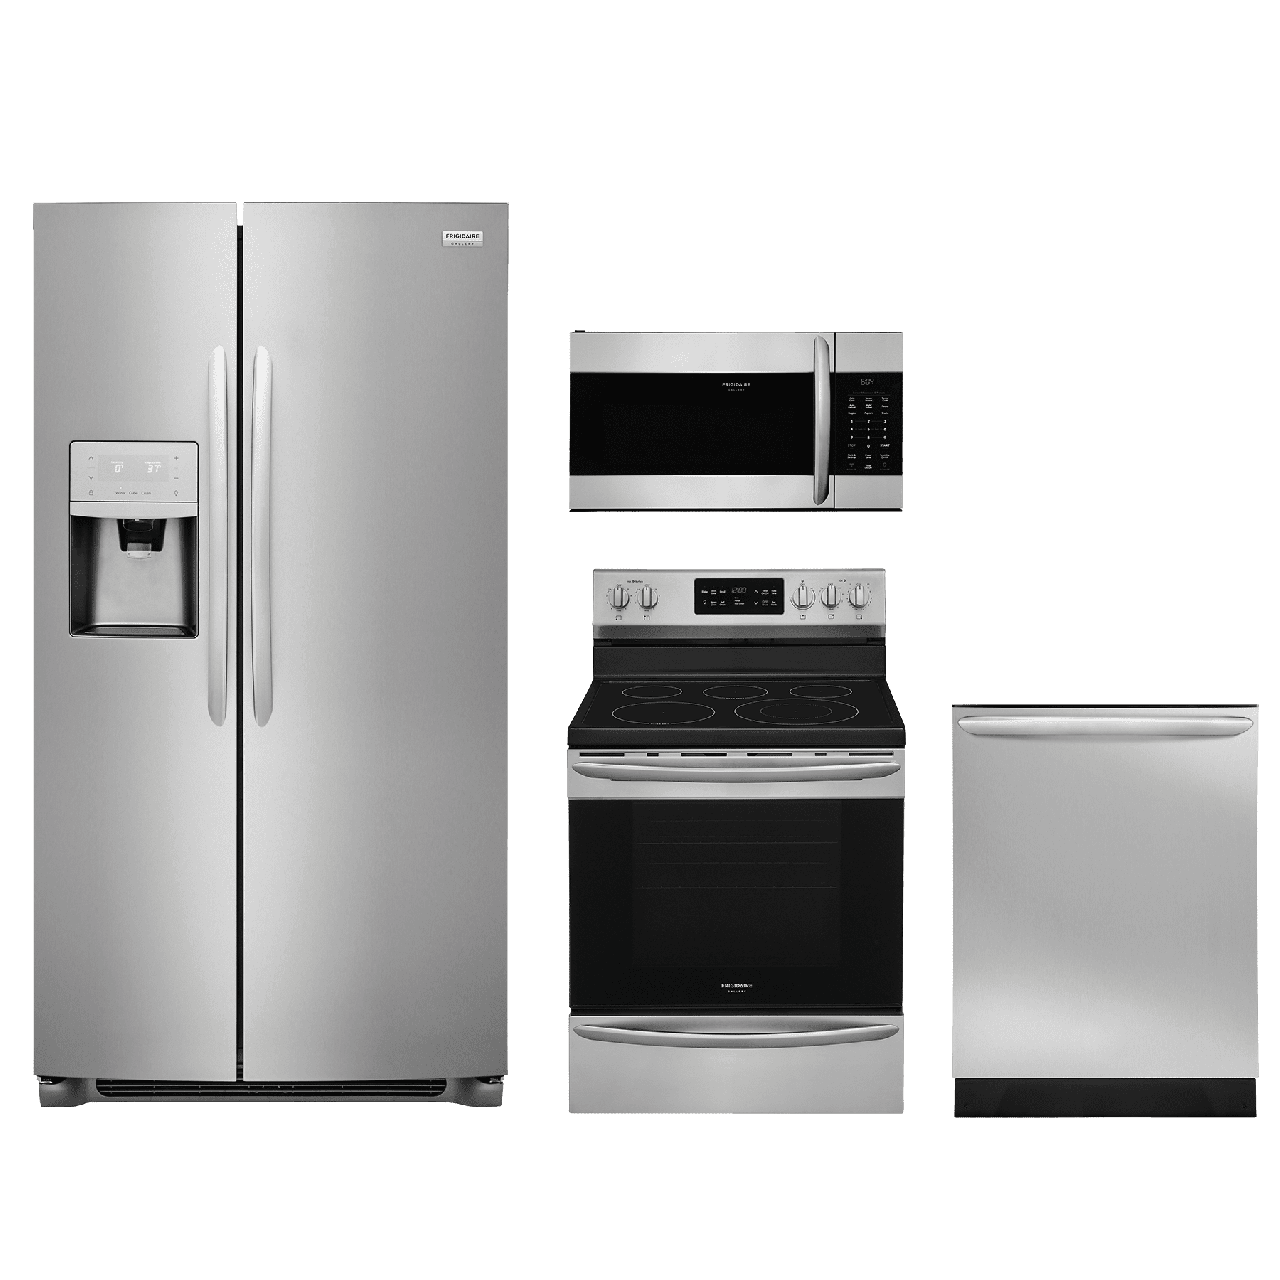 steel packages best package deals depot home stainless appliances lovely appliance piece kitchen wallpaper